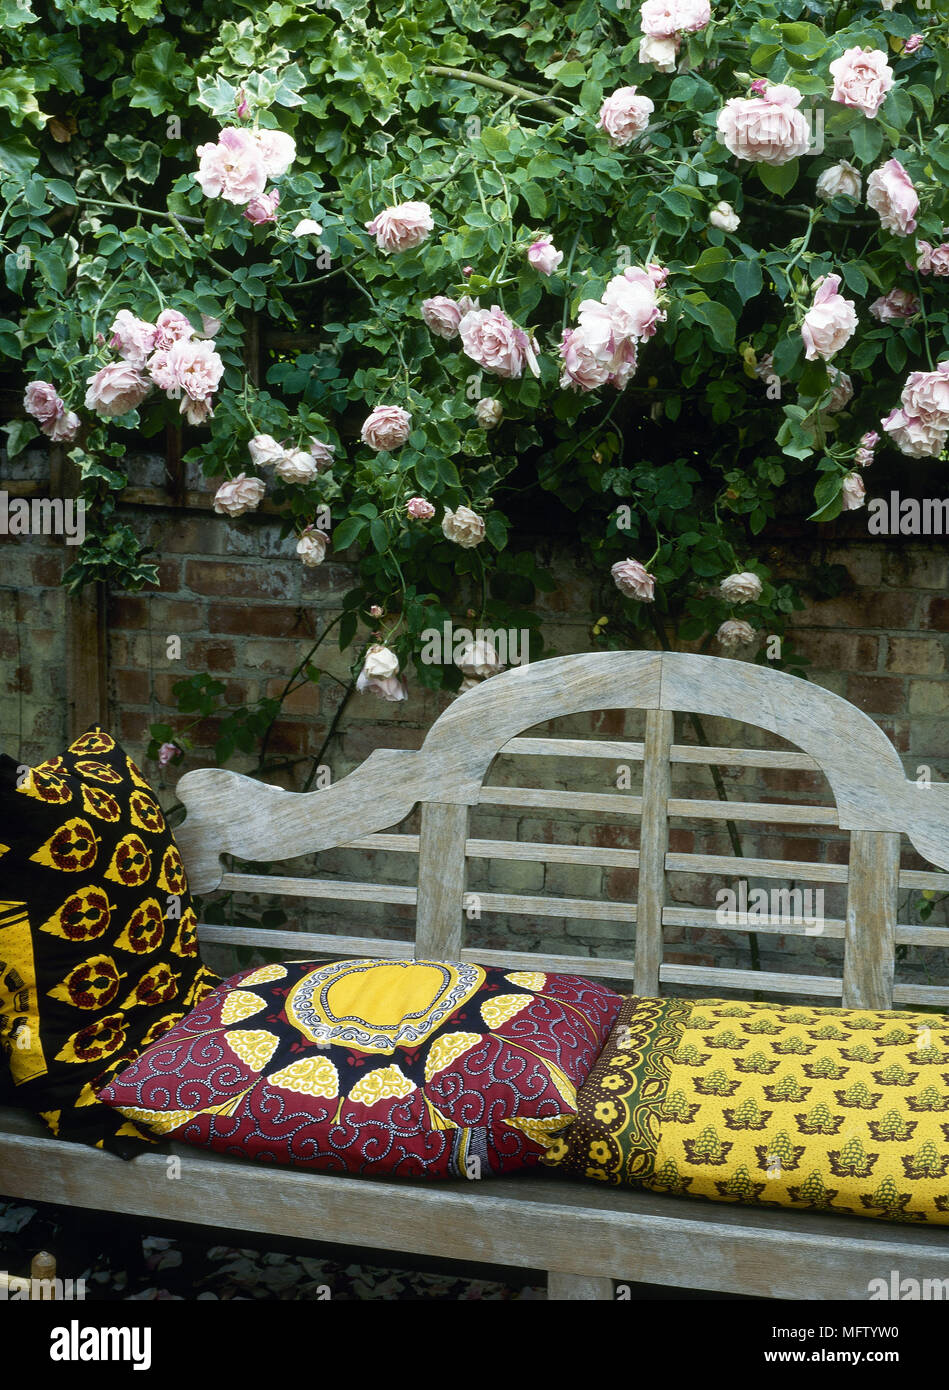 Wooden Garden Bench With Cushions Next To Garden Brick Wall With Climbing  Rose On Wall Fixed